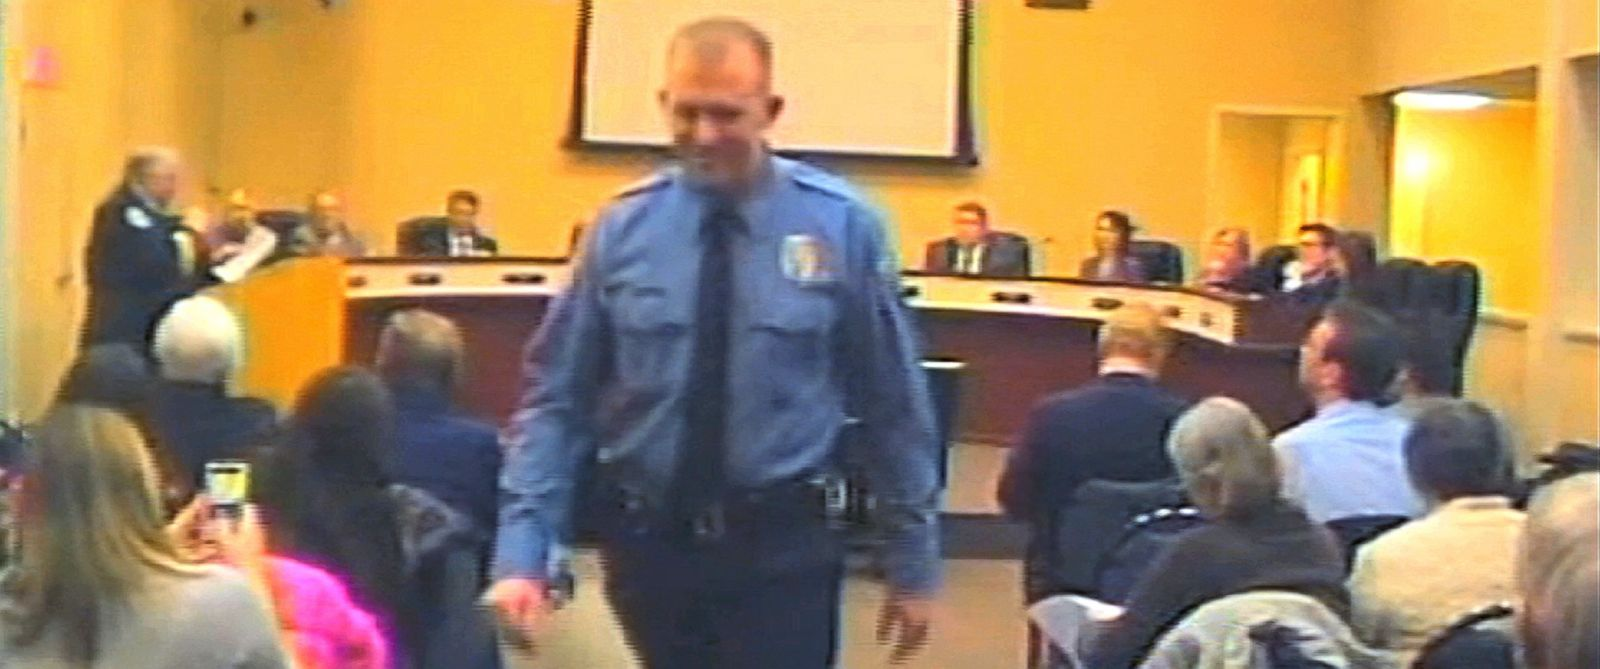 PHOTO: In this Feb. 11, 2014 file image from video provided by the City of Ferguson, Mo., officer Darren Wilson attends a city council meeting in Ferguson.